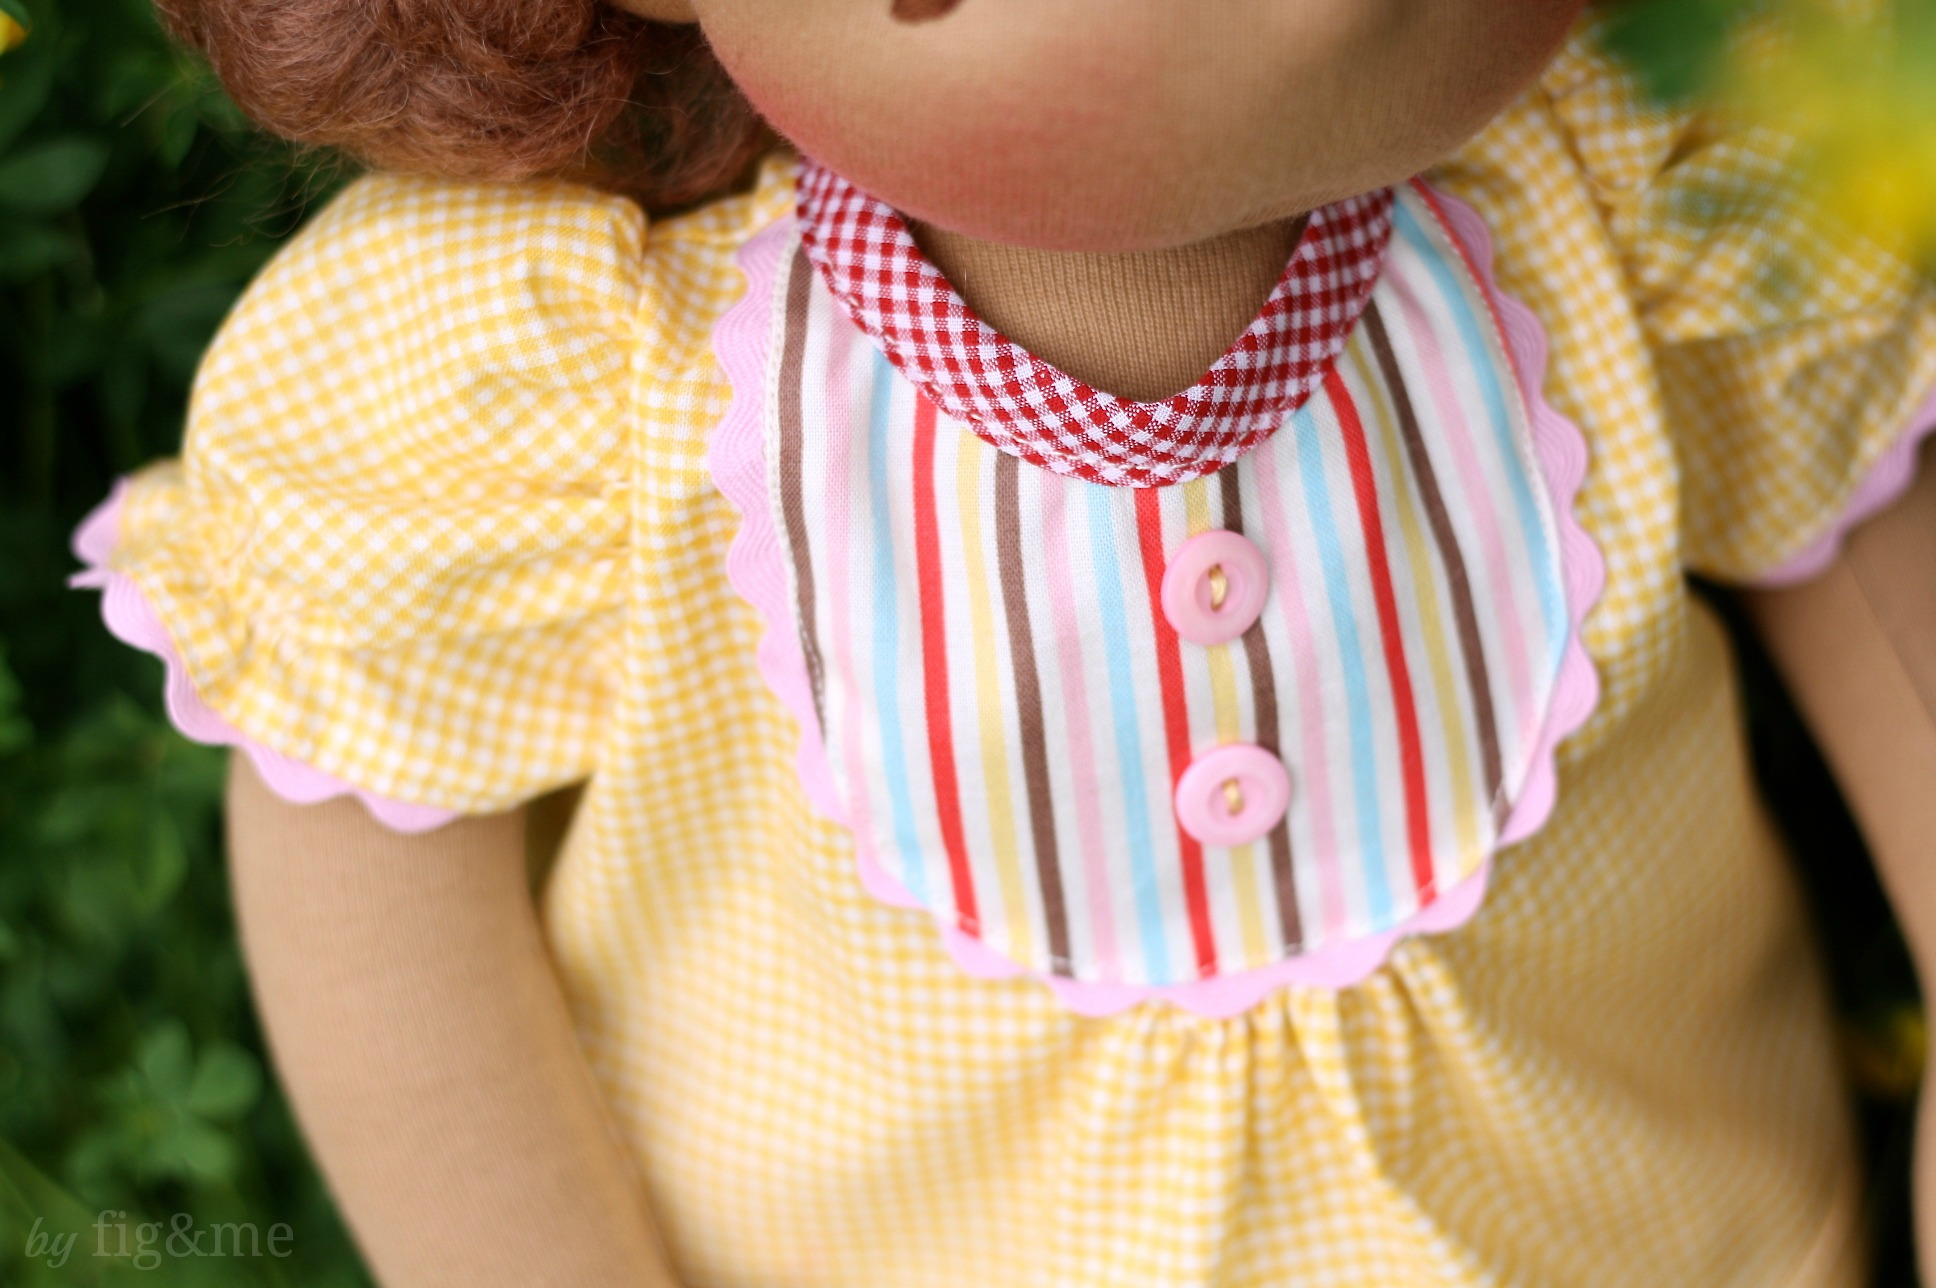 Doll blouse with front bib edged in ric rac, by fig and me.